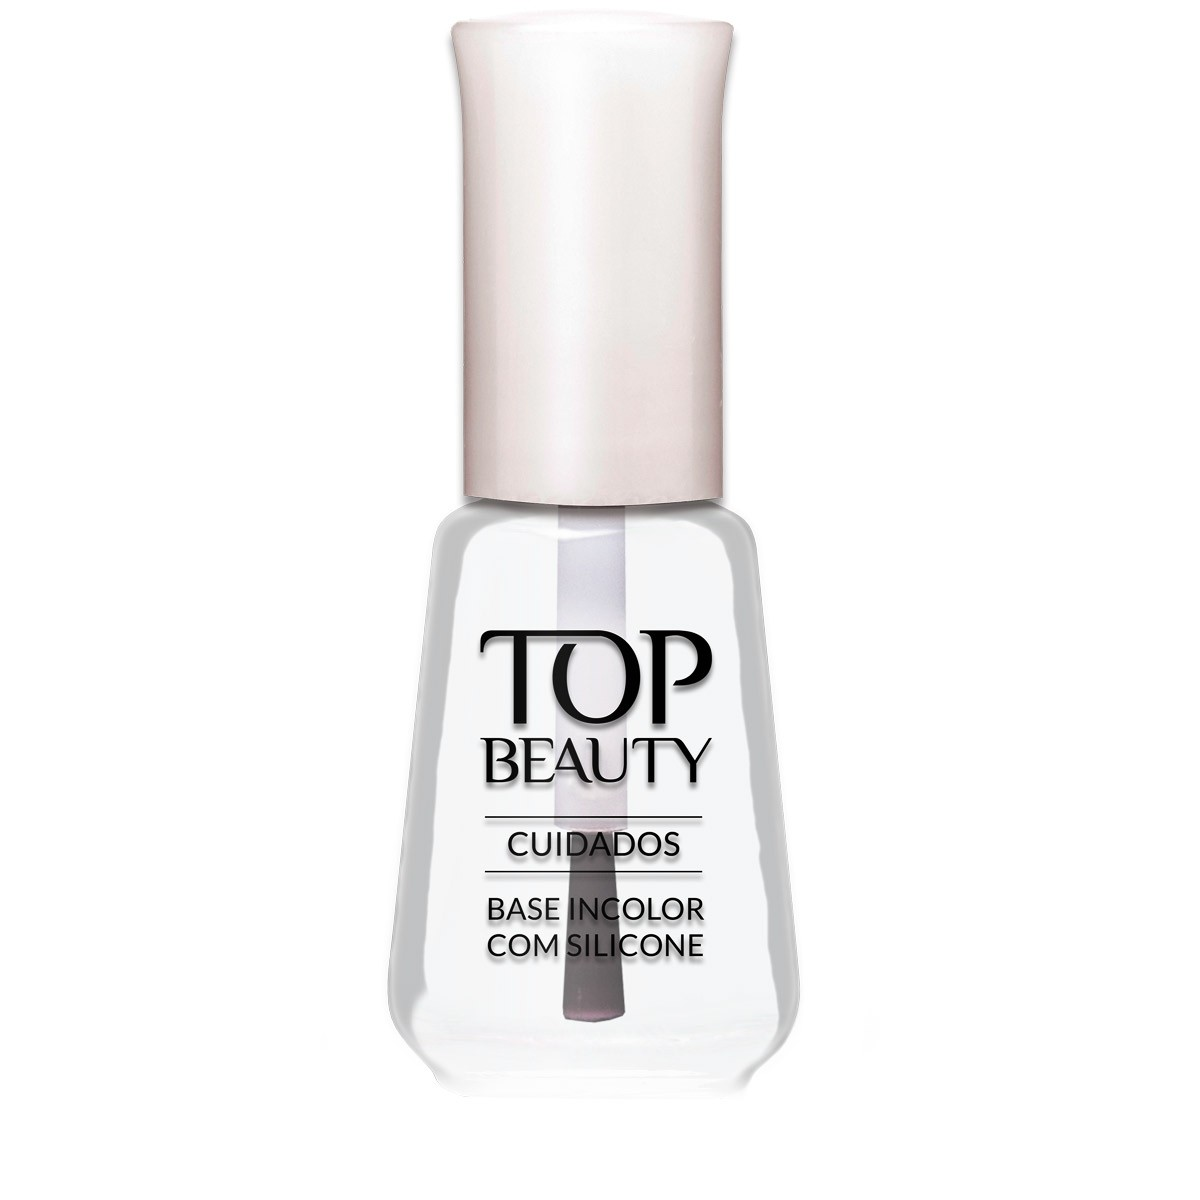 Base Incolor com Silicone Top Beauty